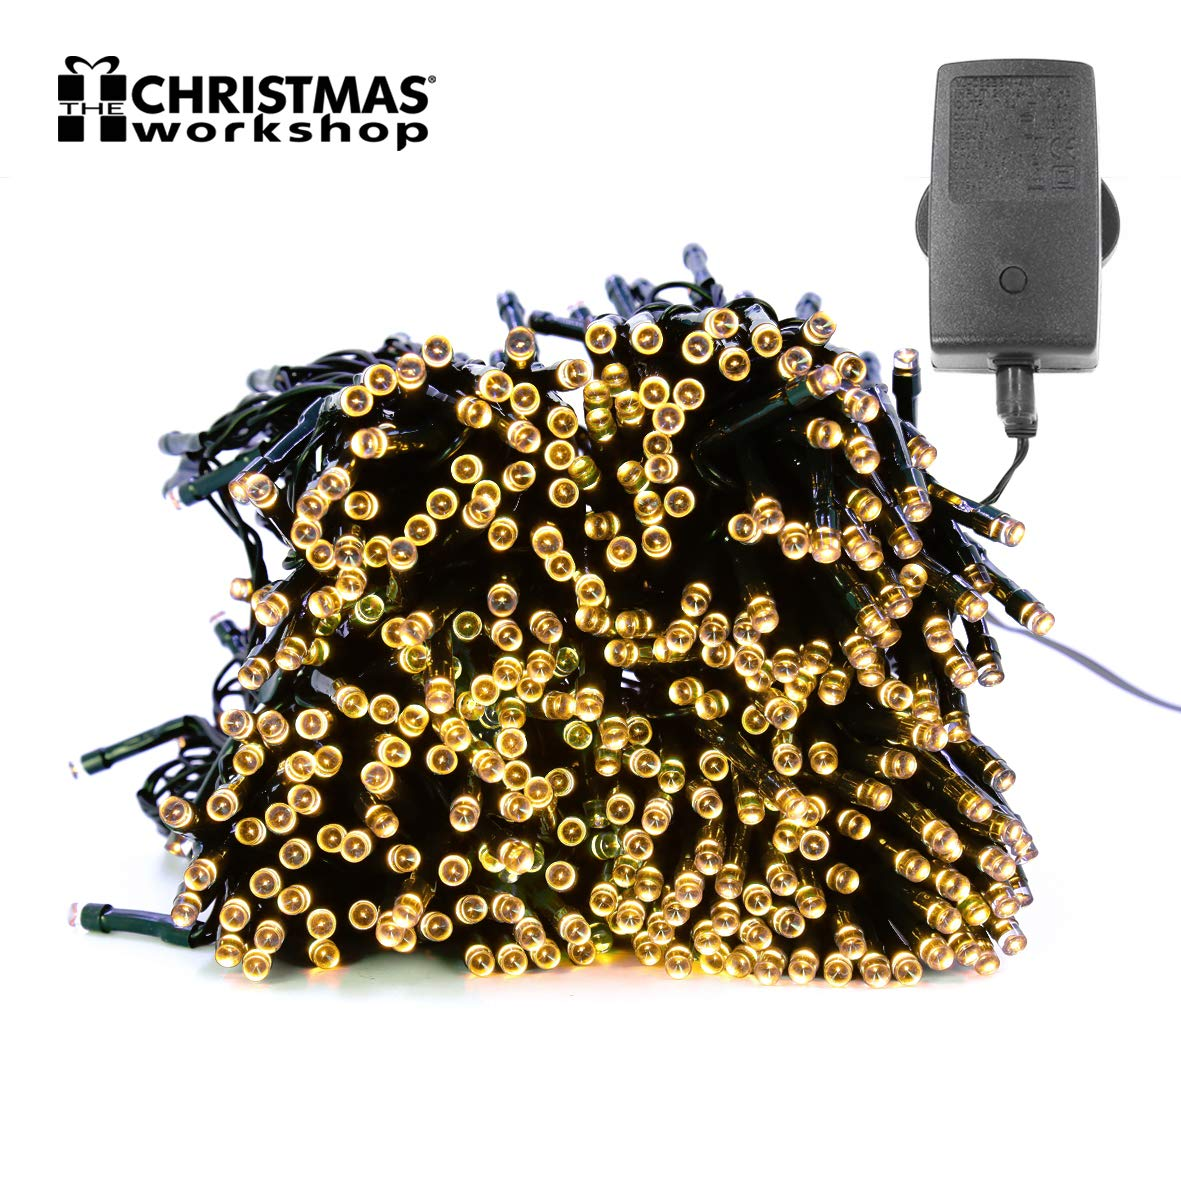 76180 Christmas Workshop Benross 400 LED Chaser String Lights Warm White, Multi Function Flashing Fairy Light, 8 Modes, Indoor & Outdoor - Garden Party Wedding Benross Group